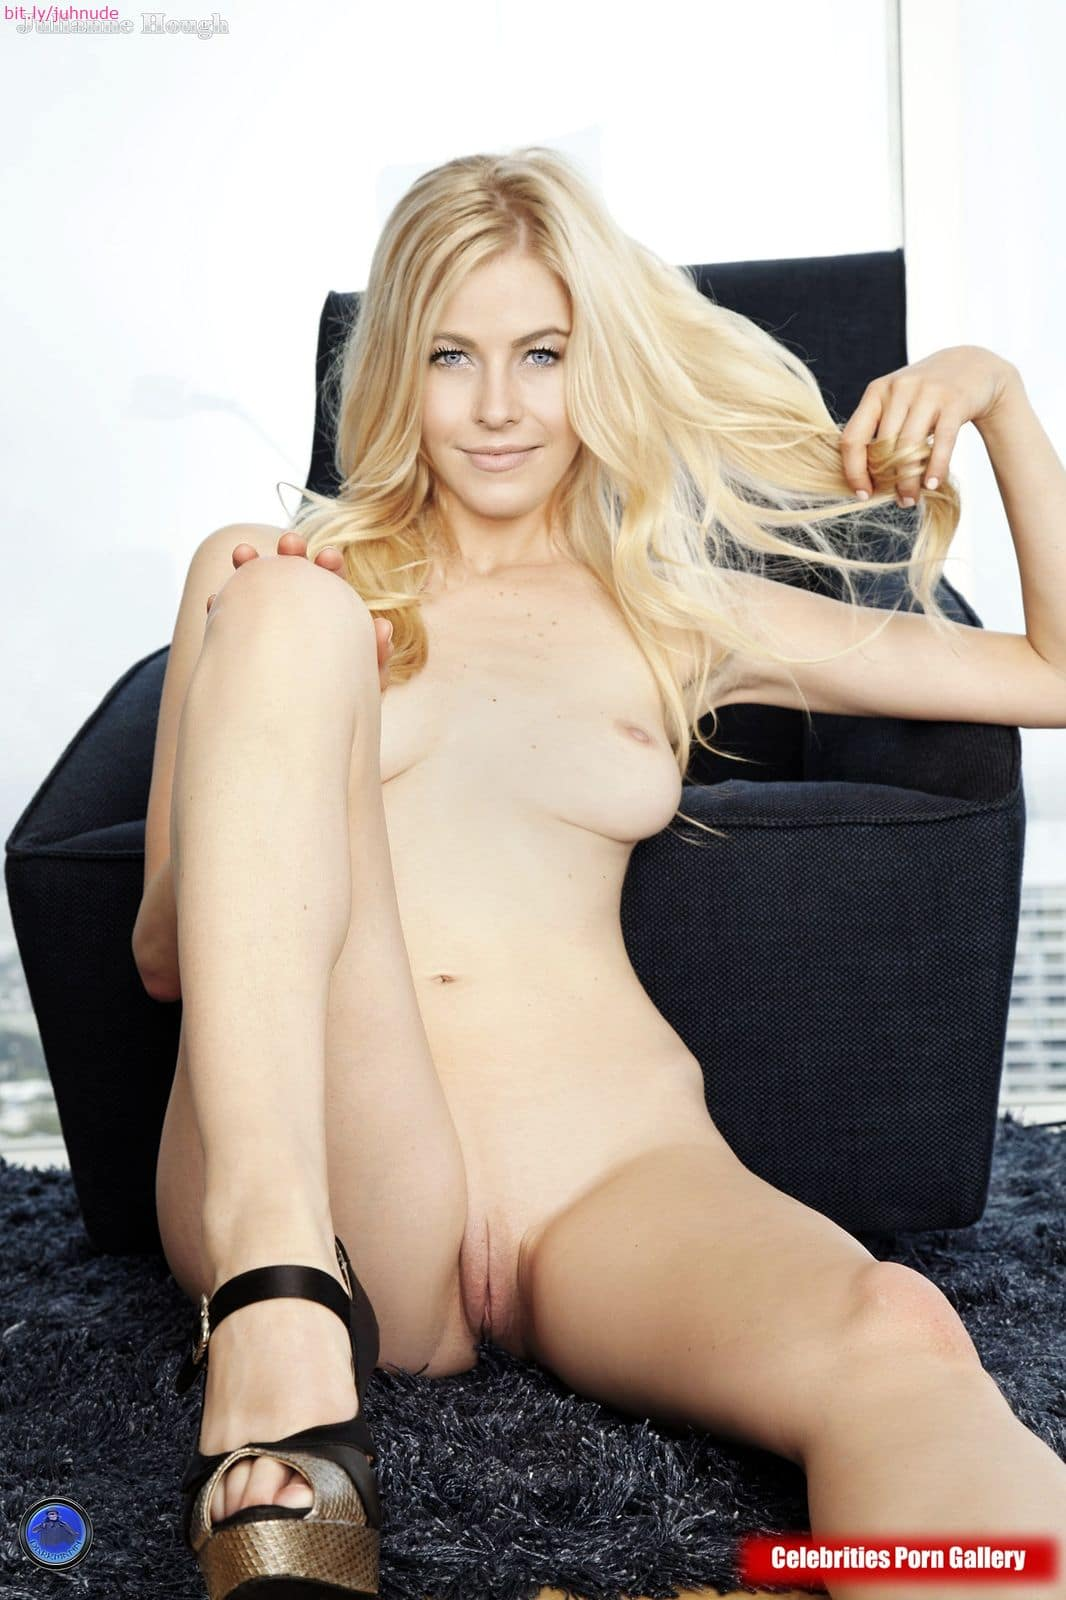 Naked ex girlfriend pictures